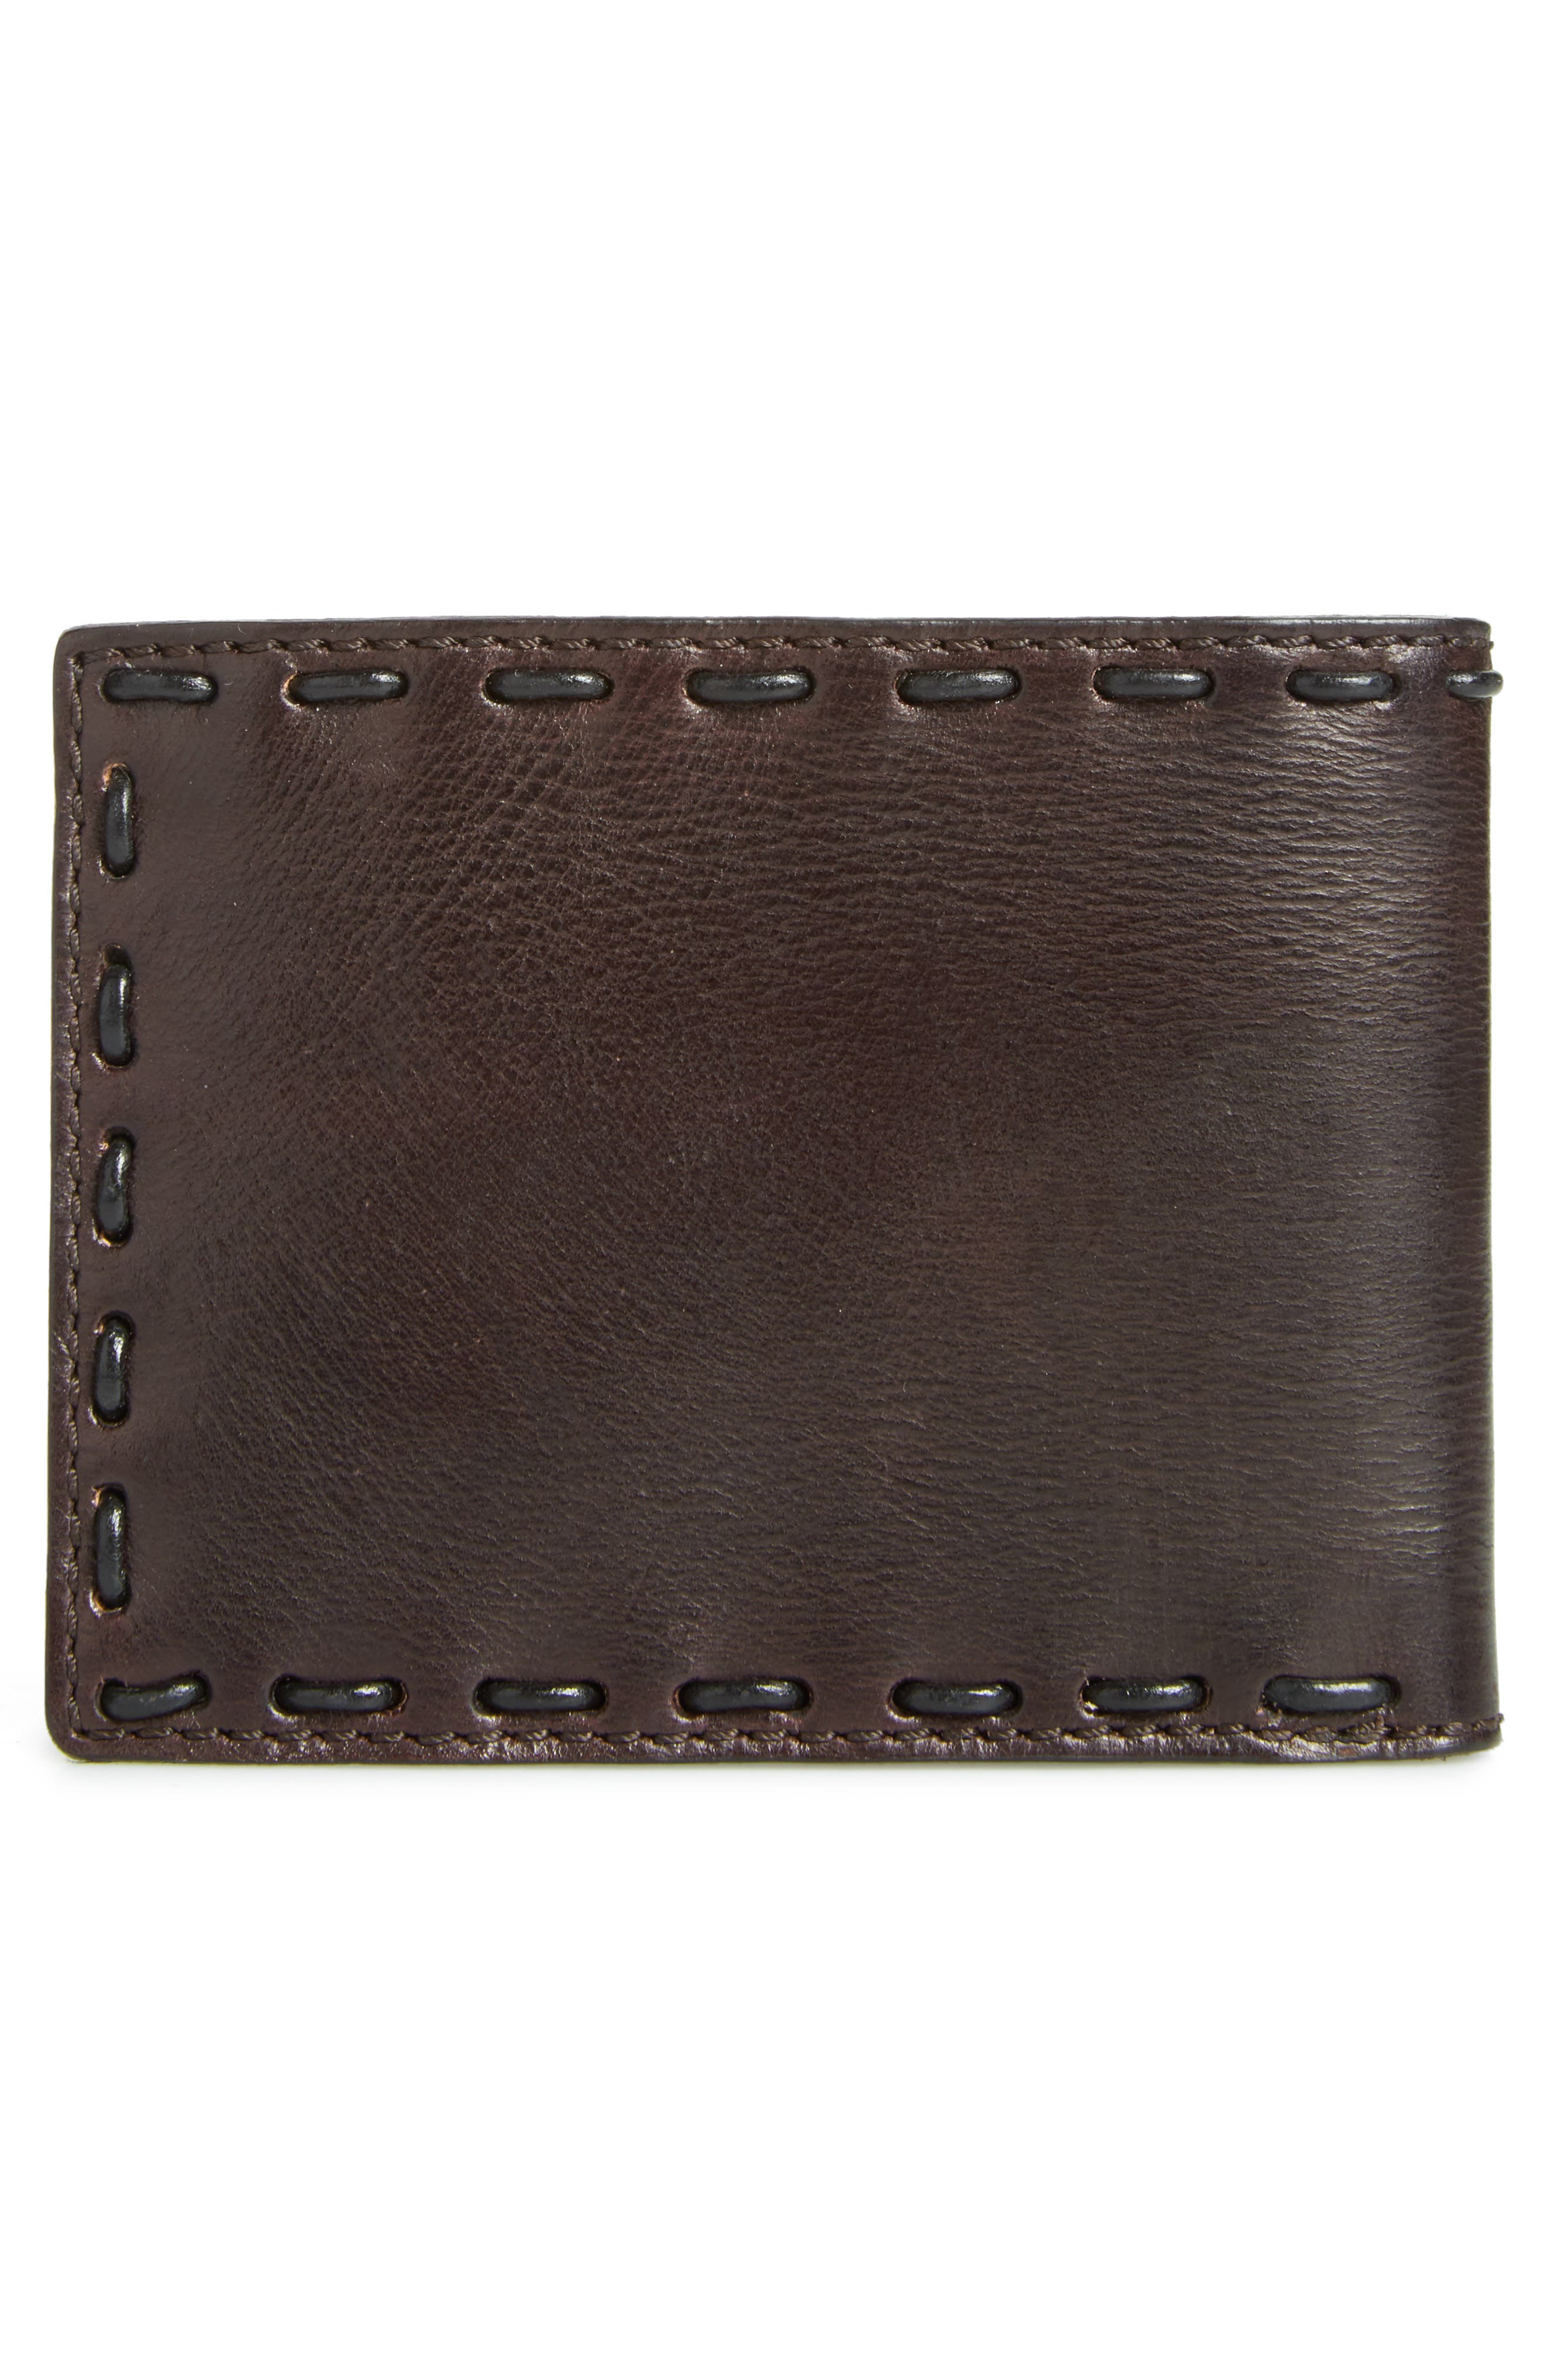 Pickstitch Leather Bifold Wallet,                             Alternate thumbnail 3, color,                             Chocolate